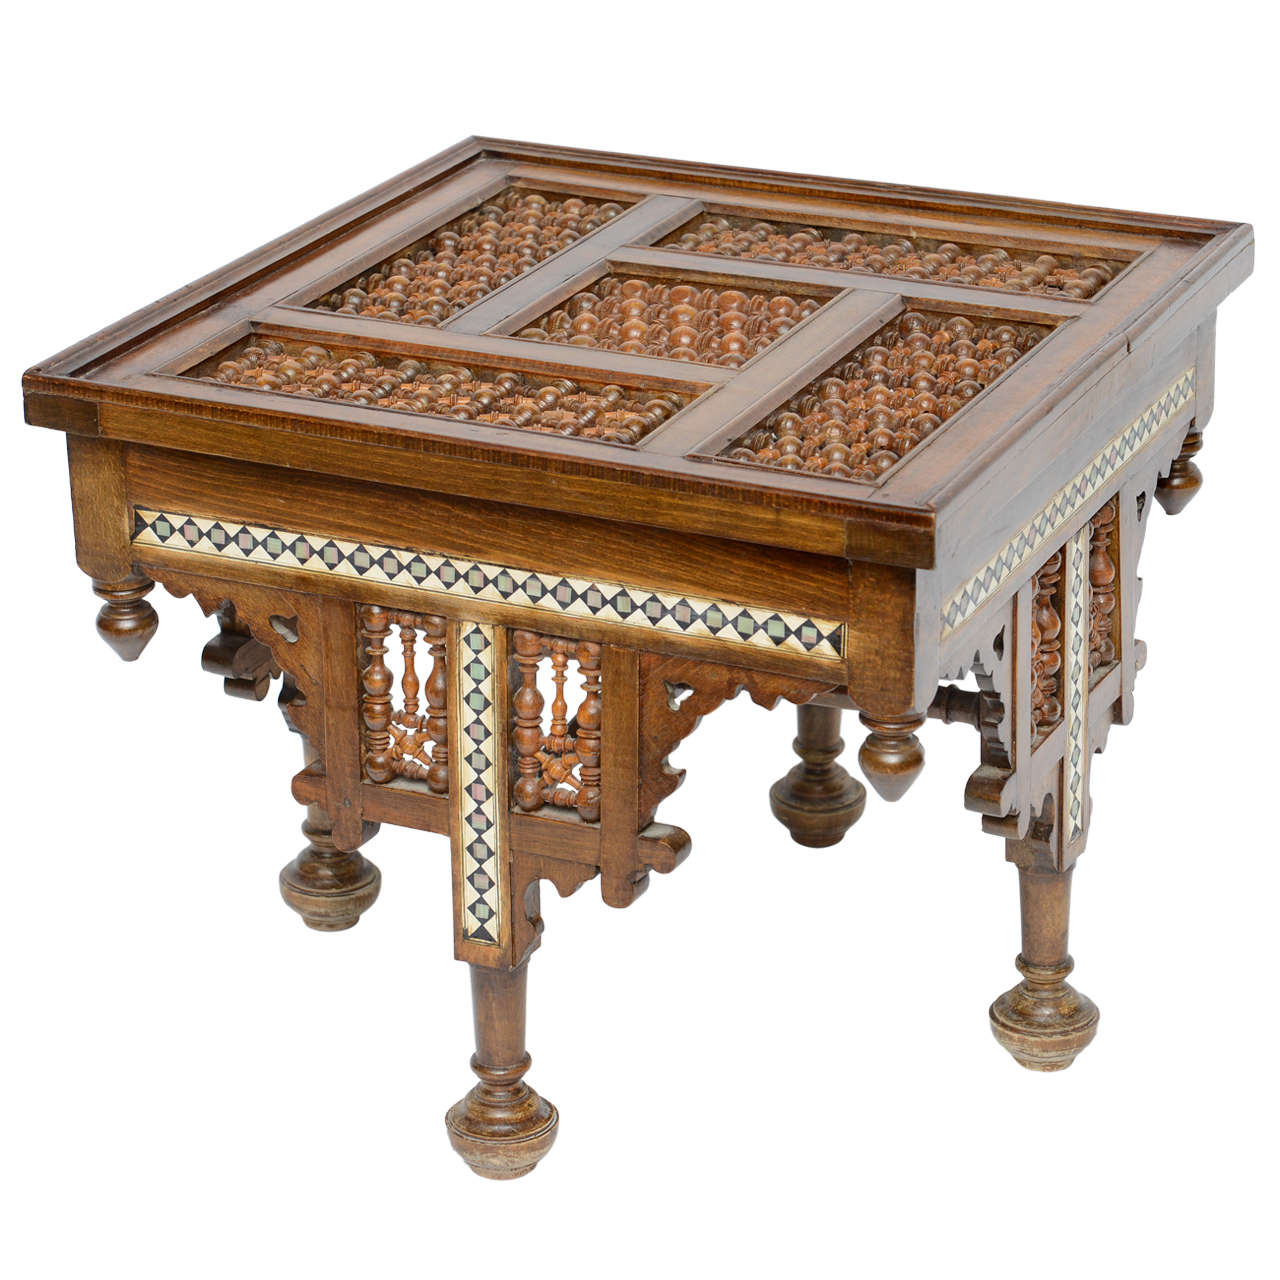 Moroccan Table Inlaid with Bone & Ivory, 19th Century